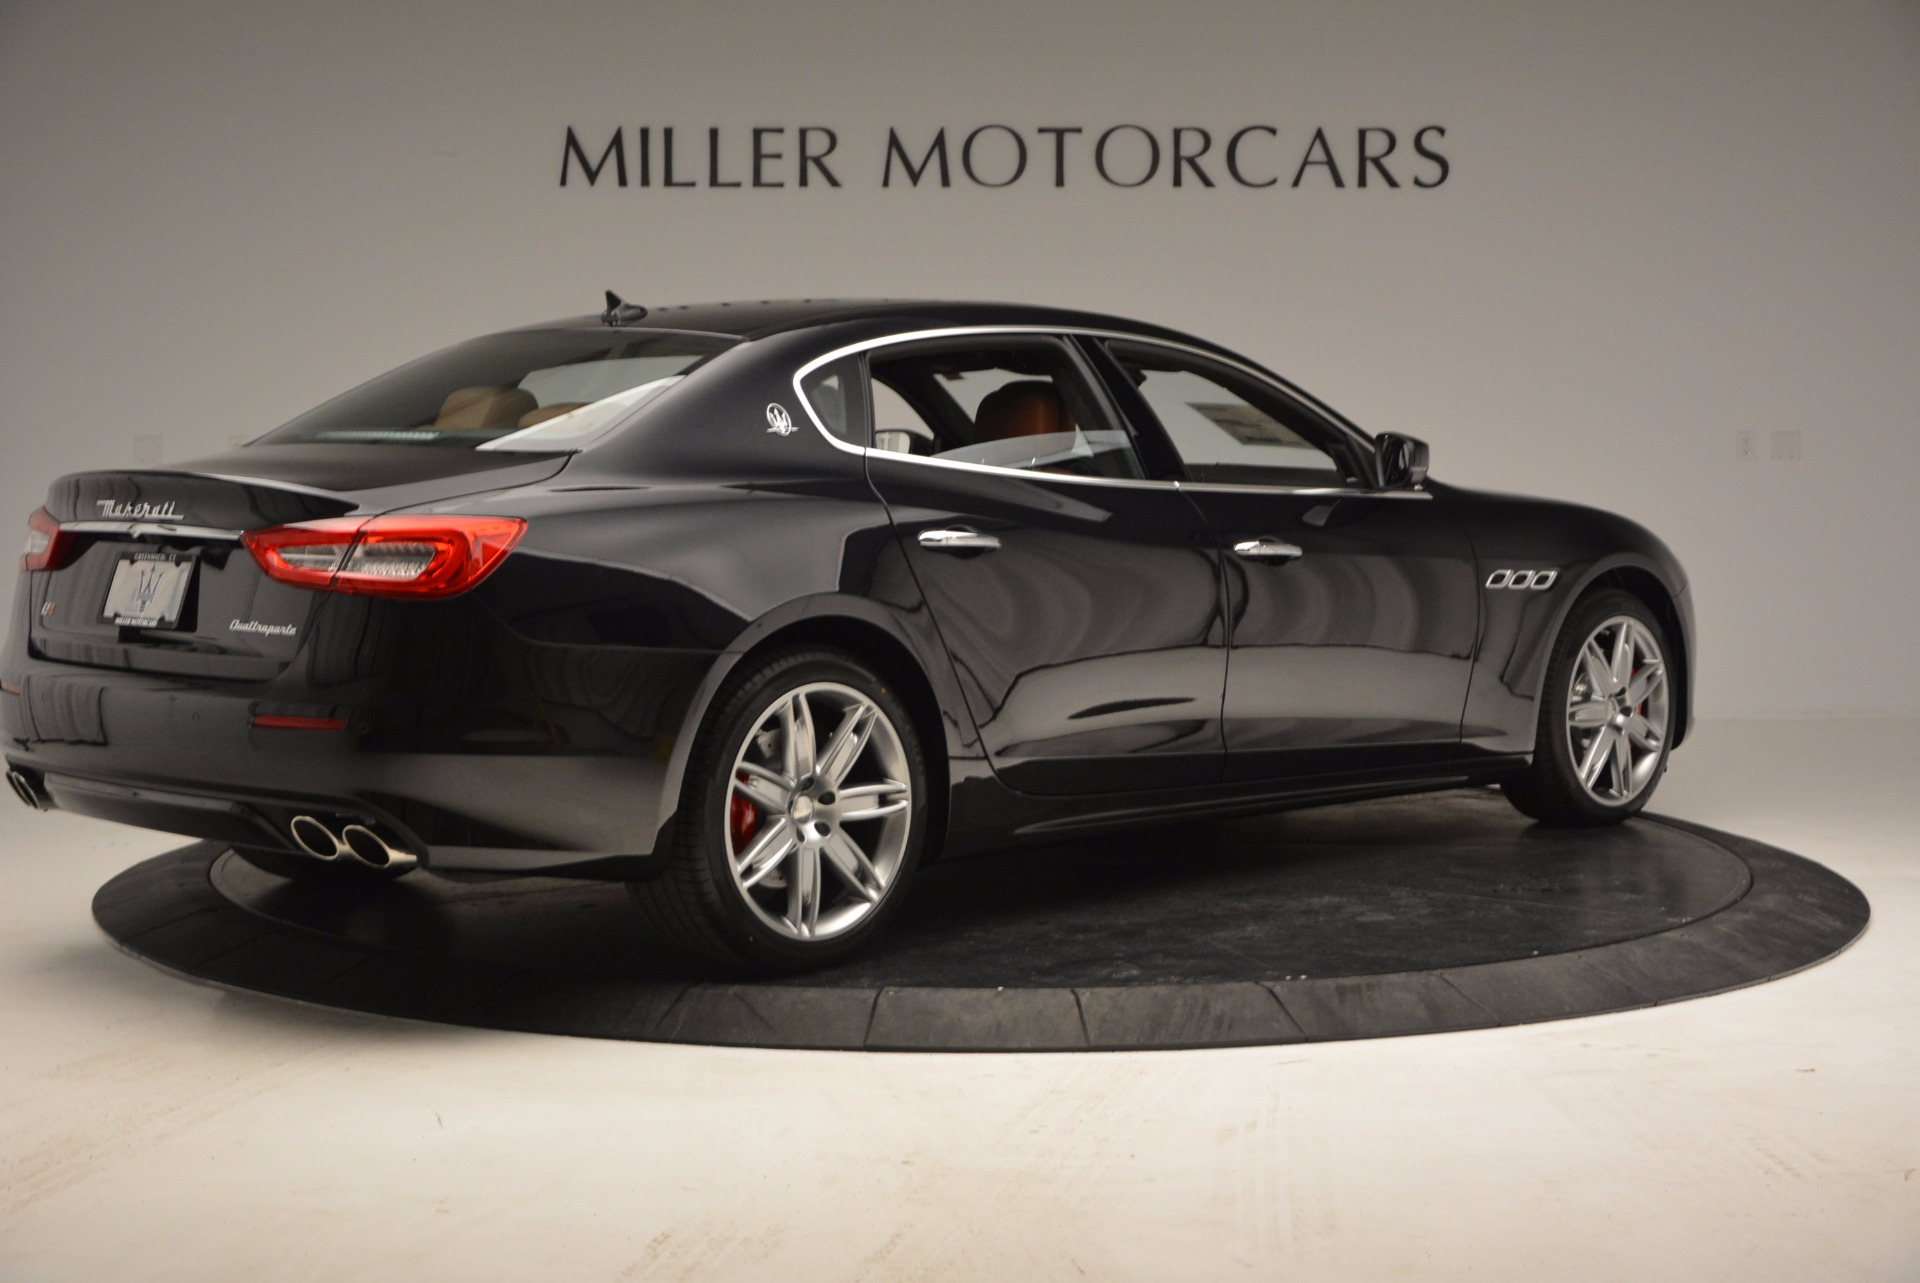 New 2017 Maserati Quattroporte S Q4 GranLusso For Sale In Greenwich, CT 716_p8